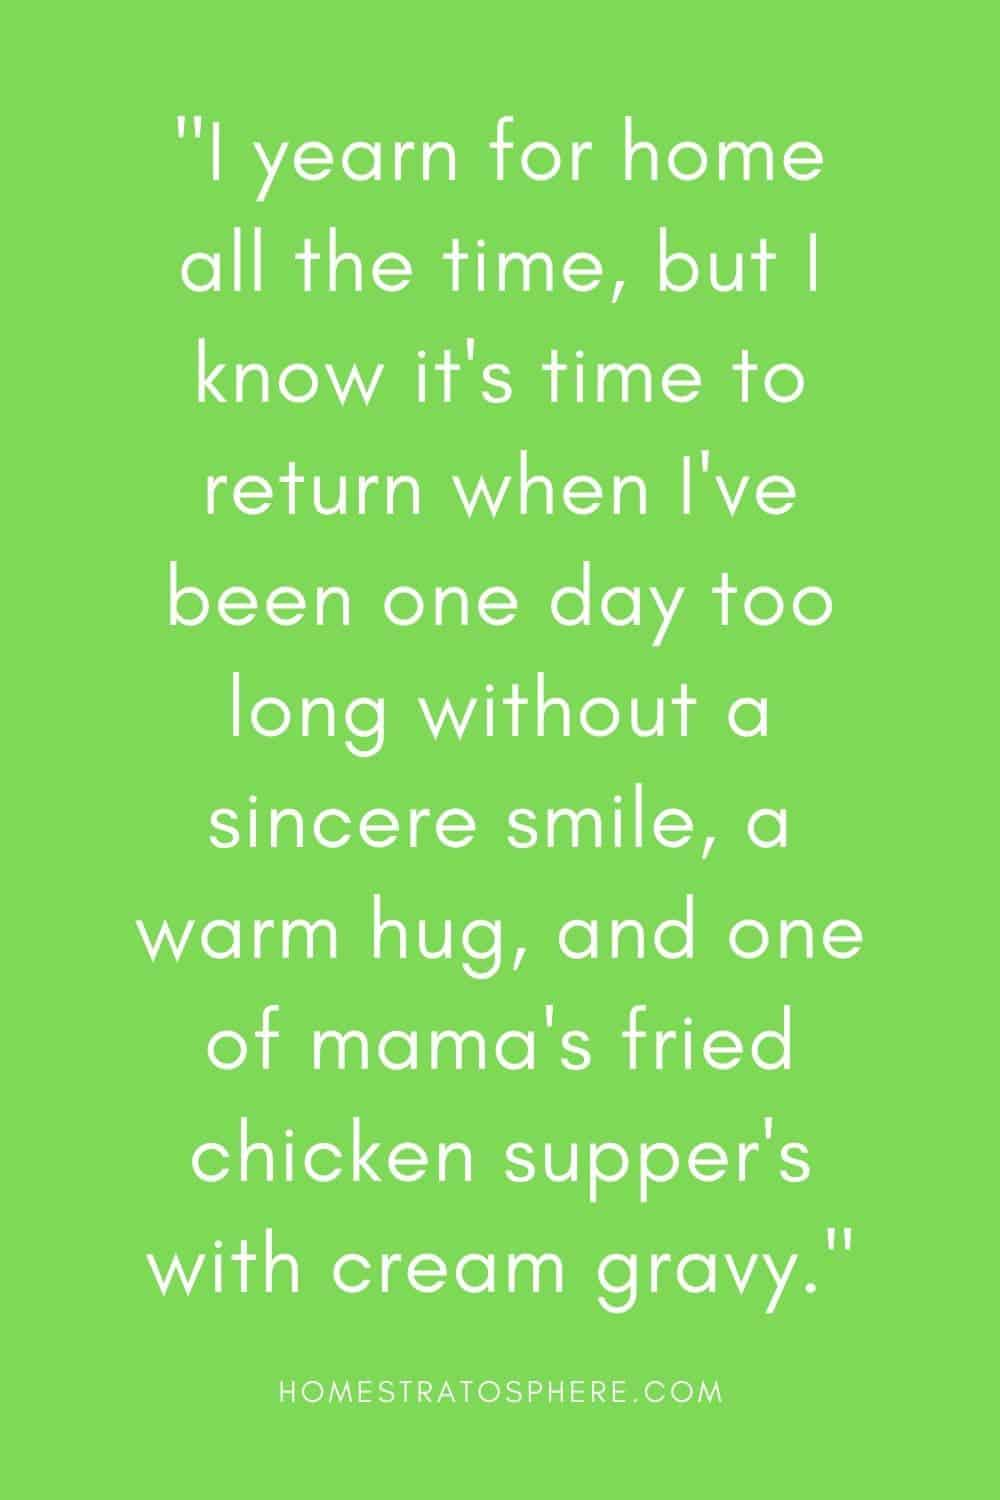 """""""I yearn for home all the time, but I know it's time to return when I've been one day too long without a sincere smile, a warm hug, and one of mama's fried chicken supper's with cream gravy."""""""